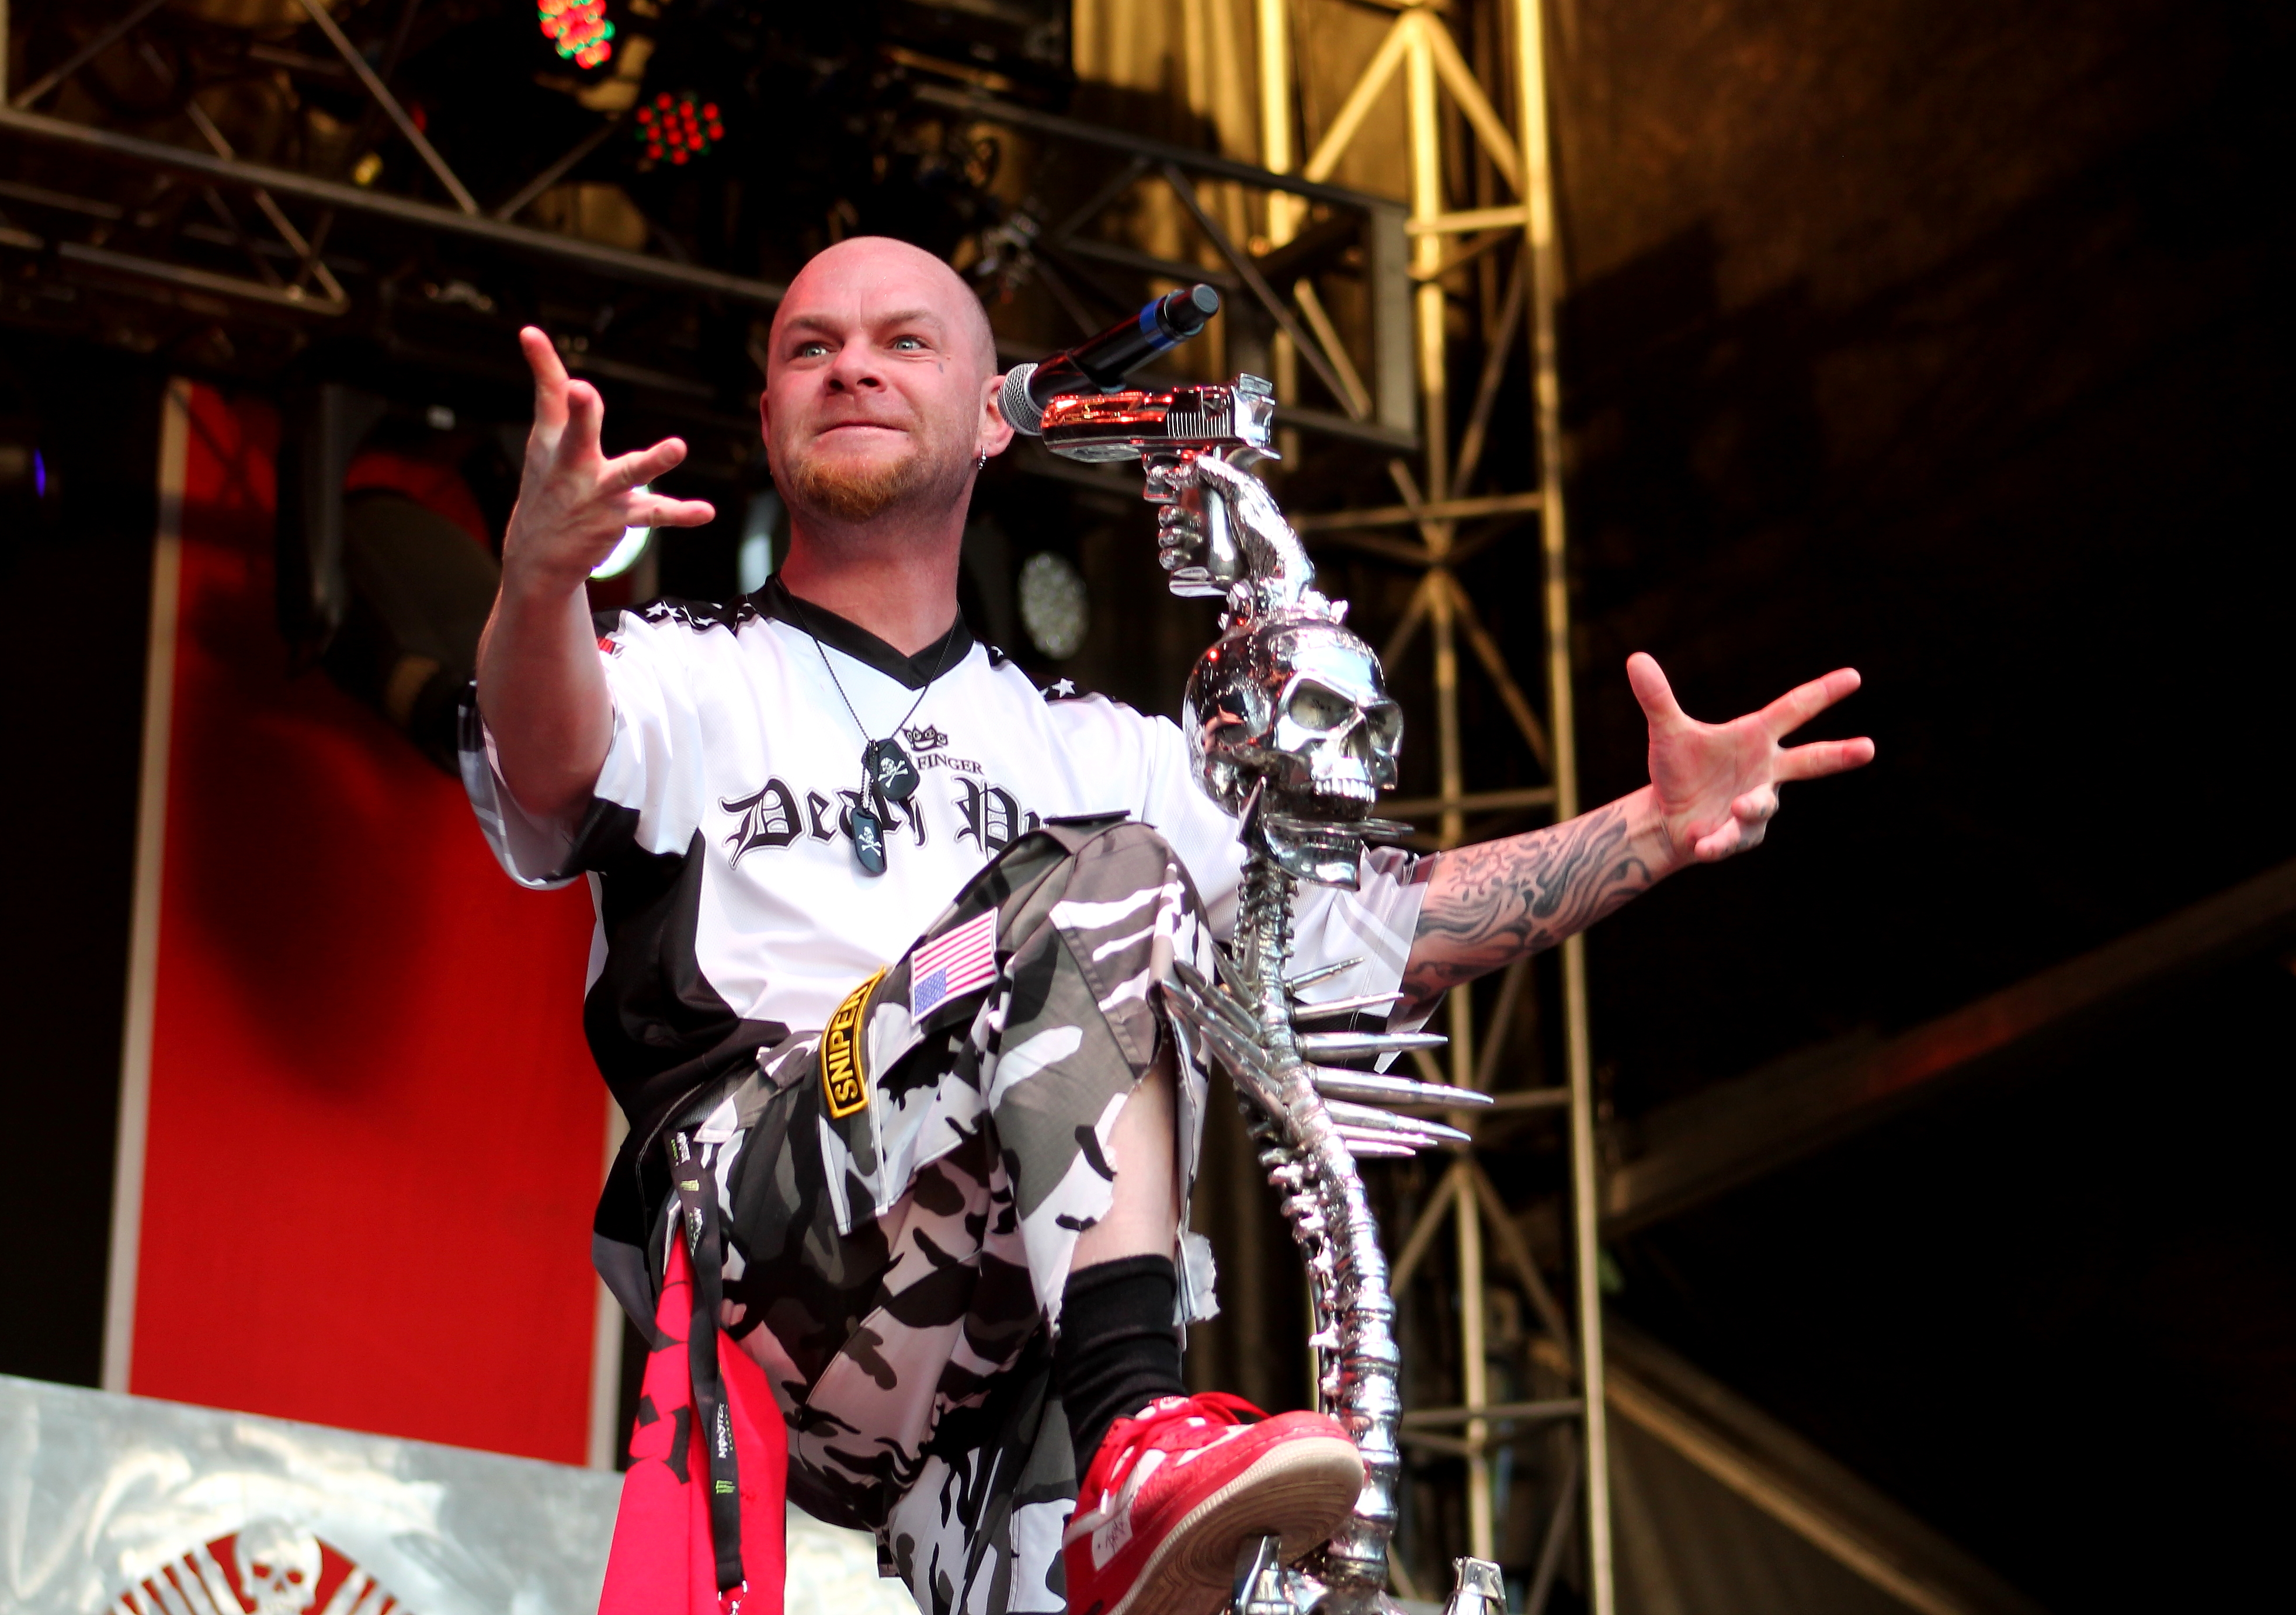 Five Finger Death Punch Is Currently On Tour And Coming To A City Near You